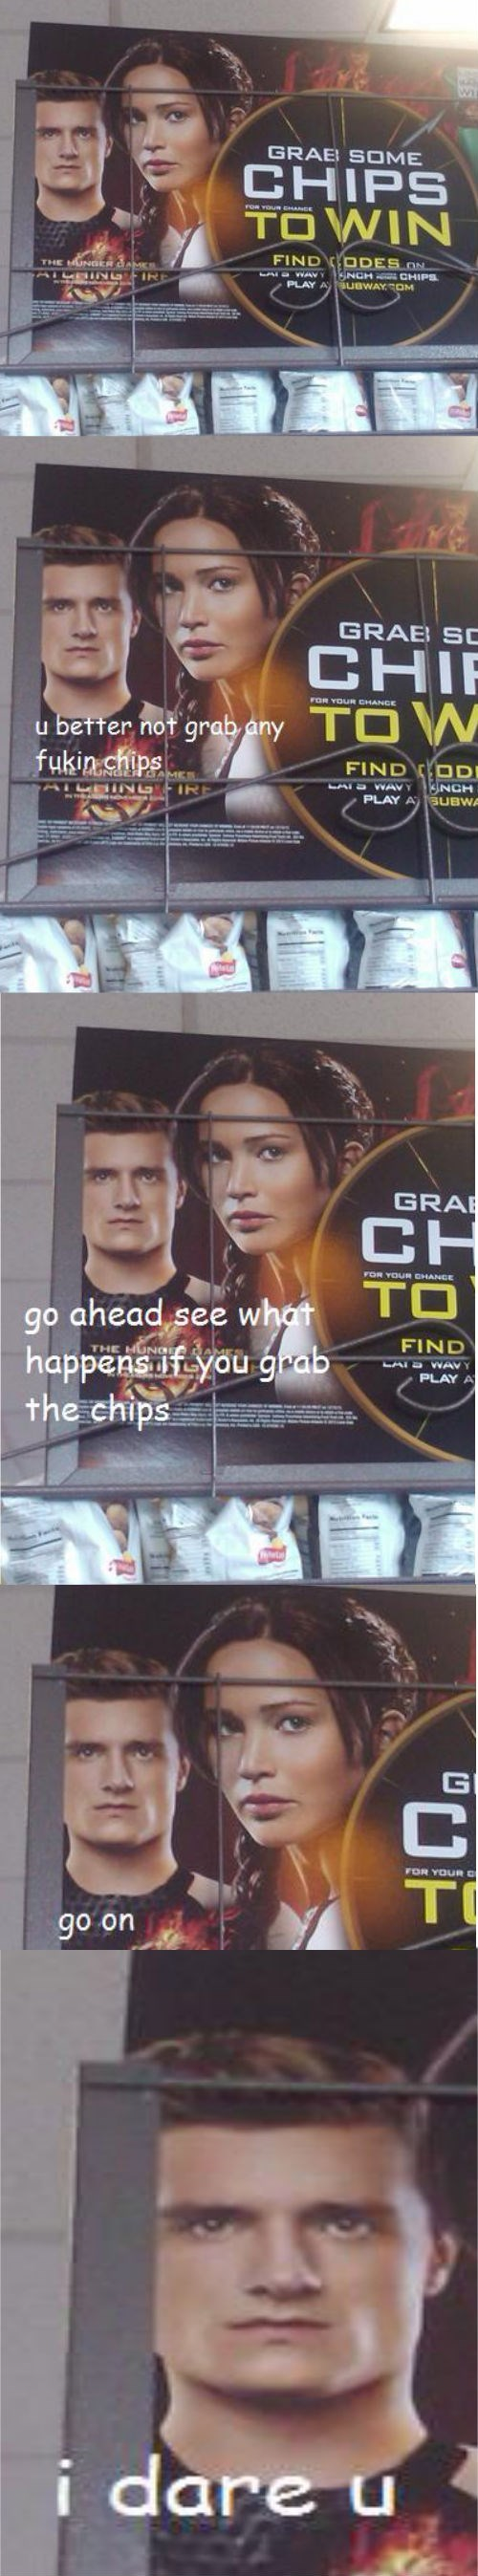 chips movies hunger games peeta - 7889163264